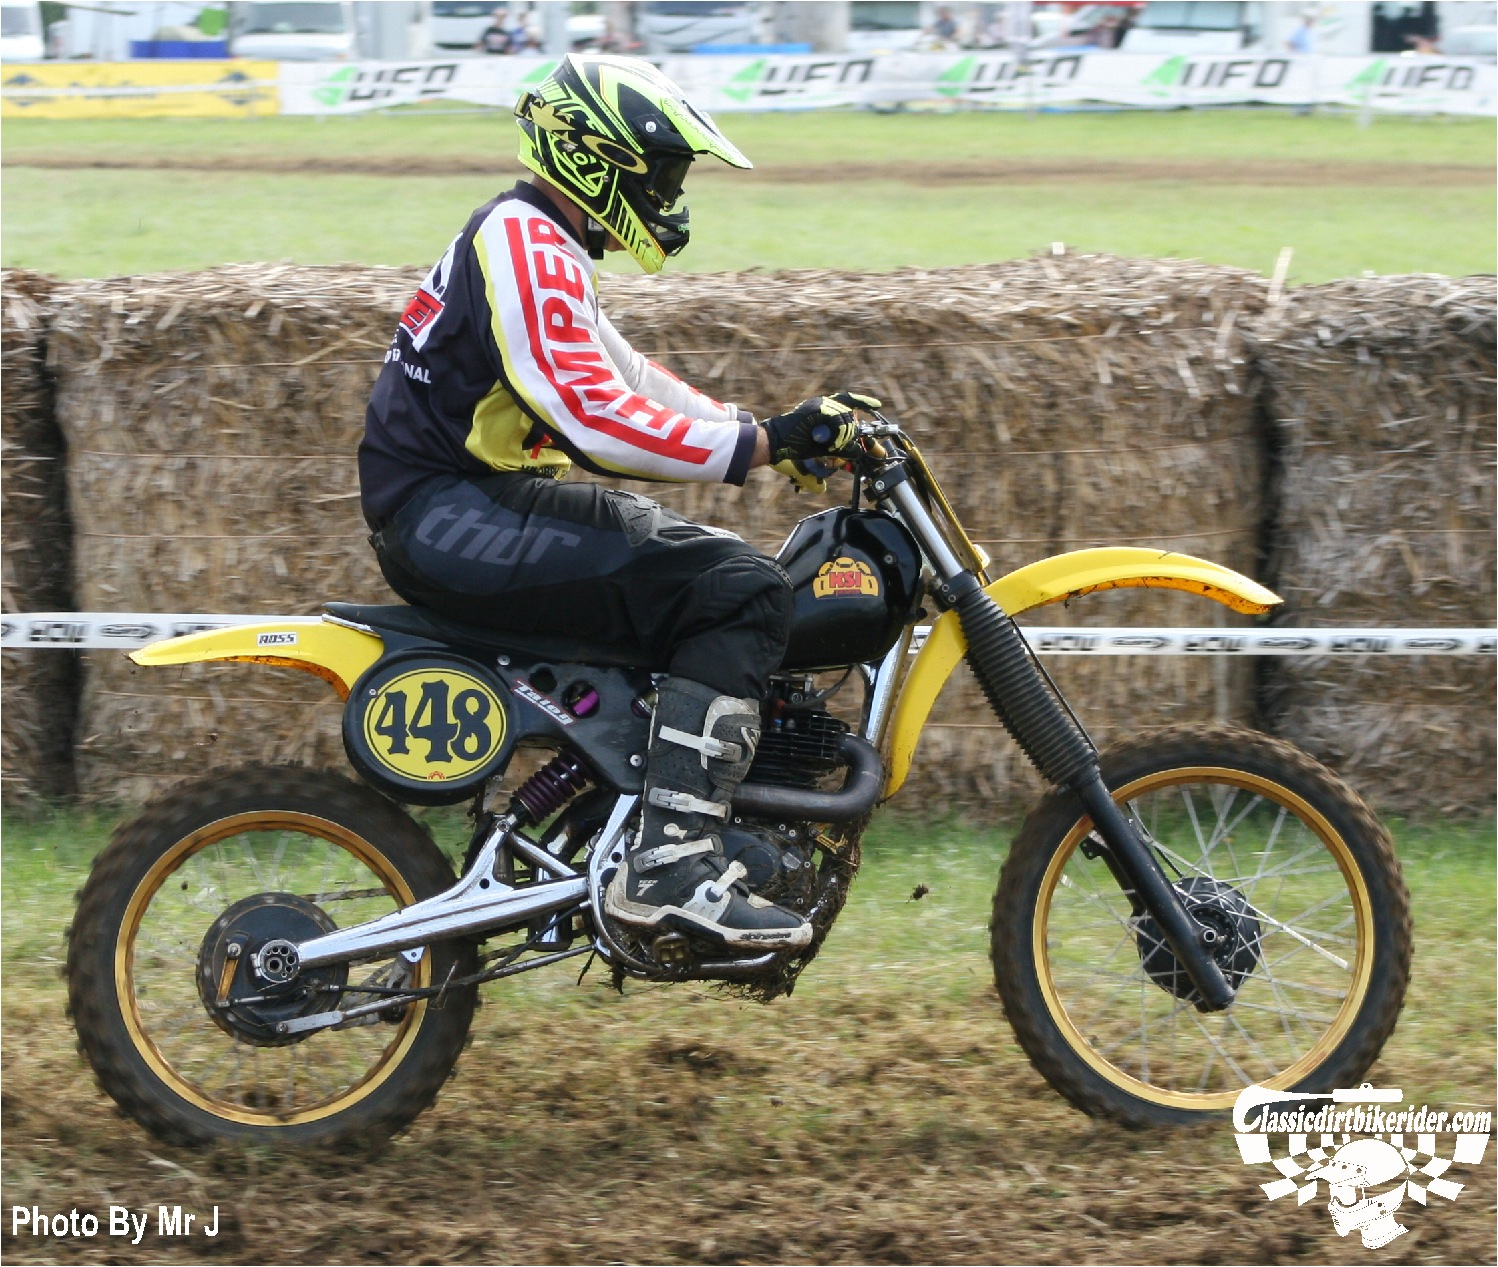 king of the castle 2015 photos Farleigh Castle twinshock motocross classicdirtbikerider.com 136